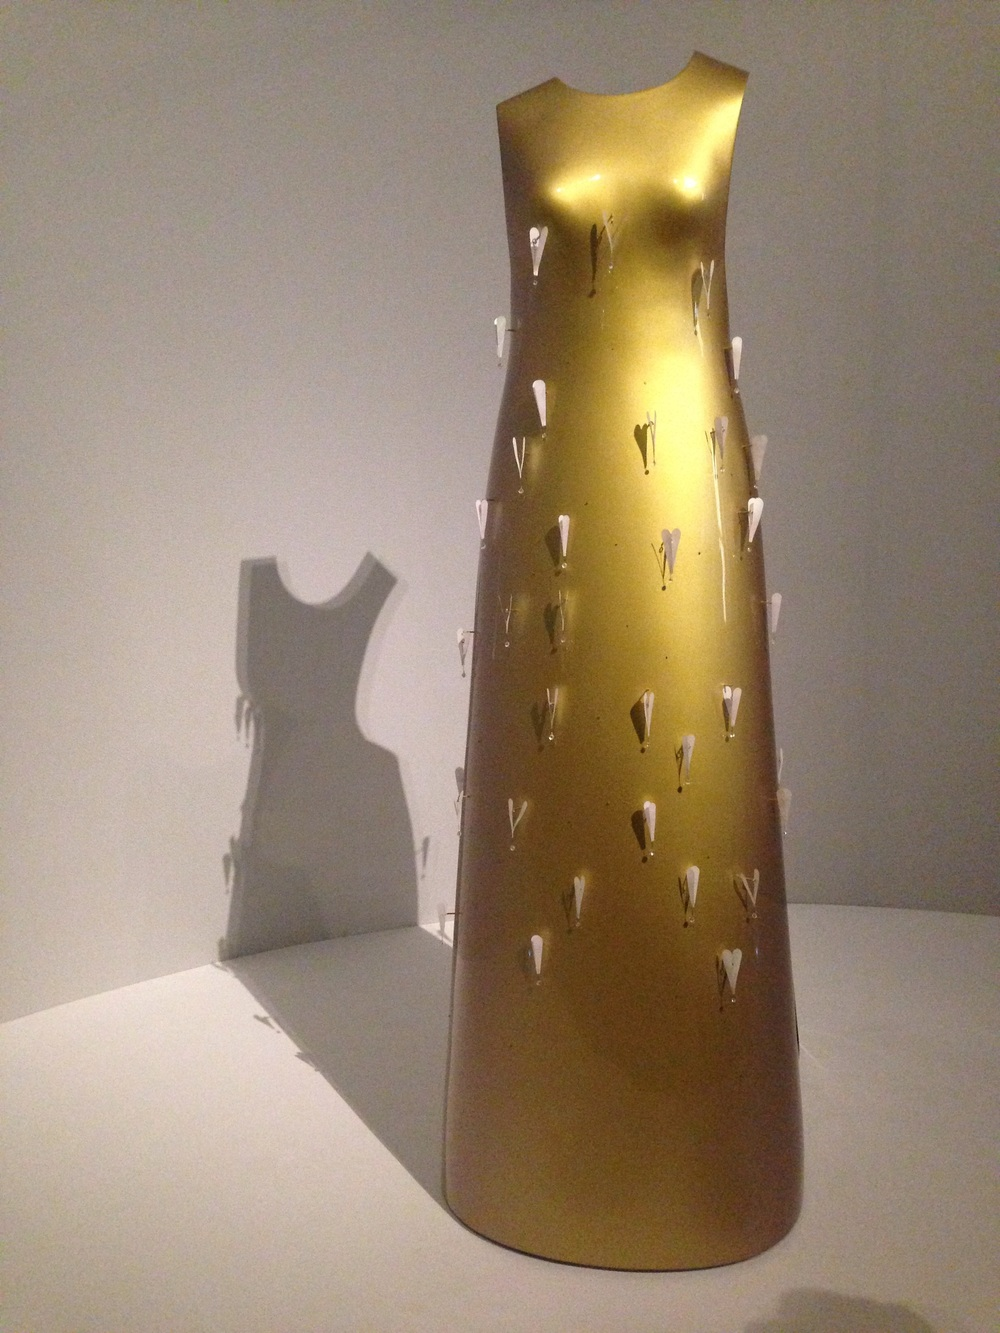 Hussein Chalayan cast fiberglass dress.  This backless dress stands on its own without a mannequin.